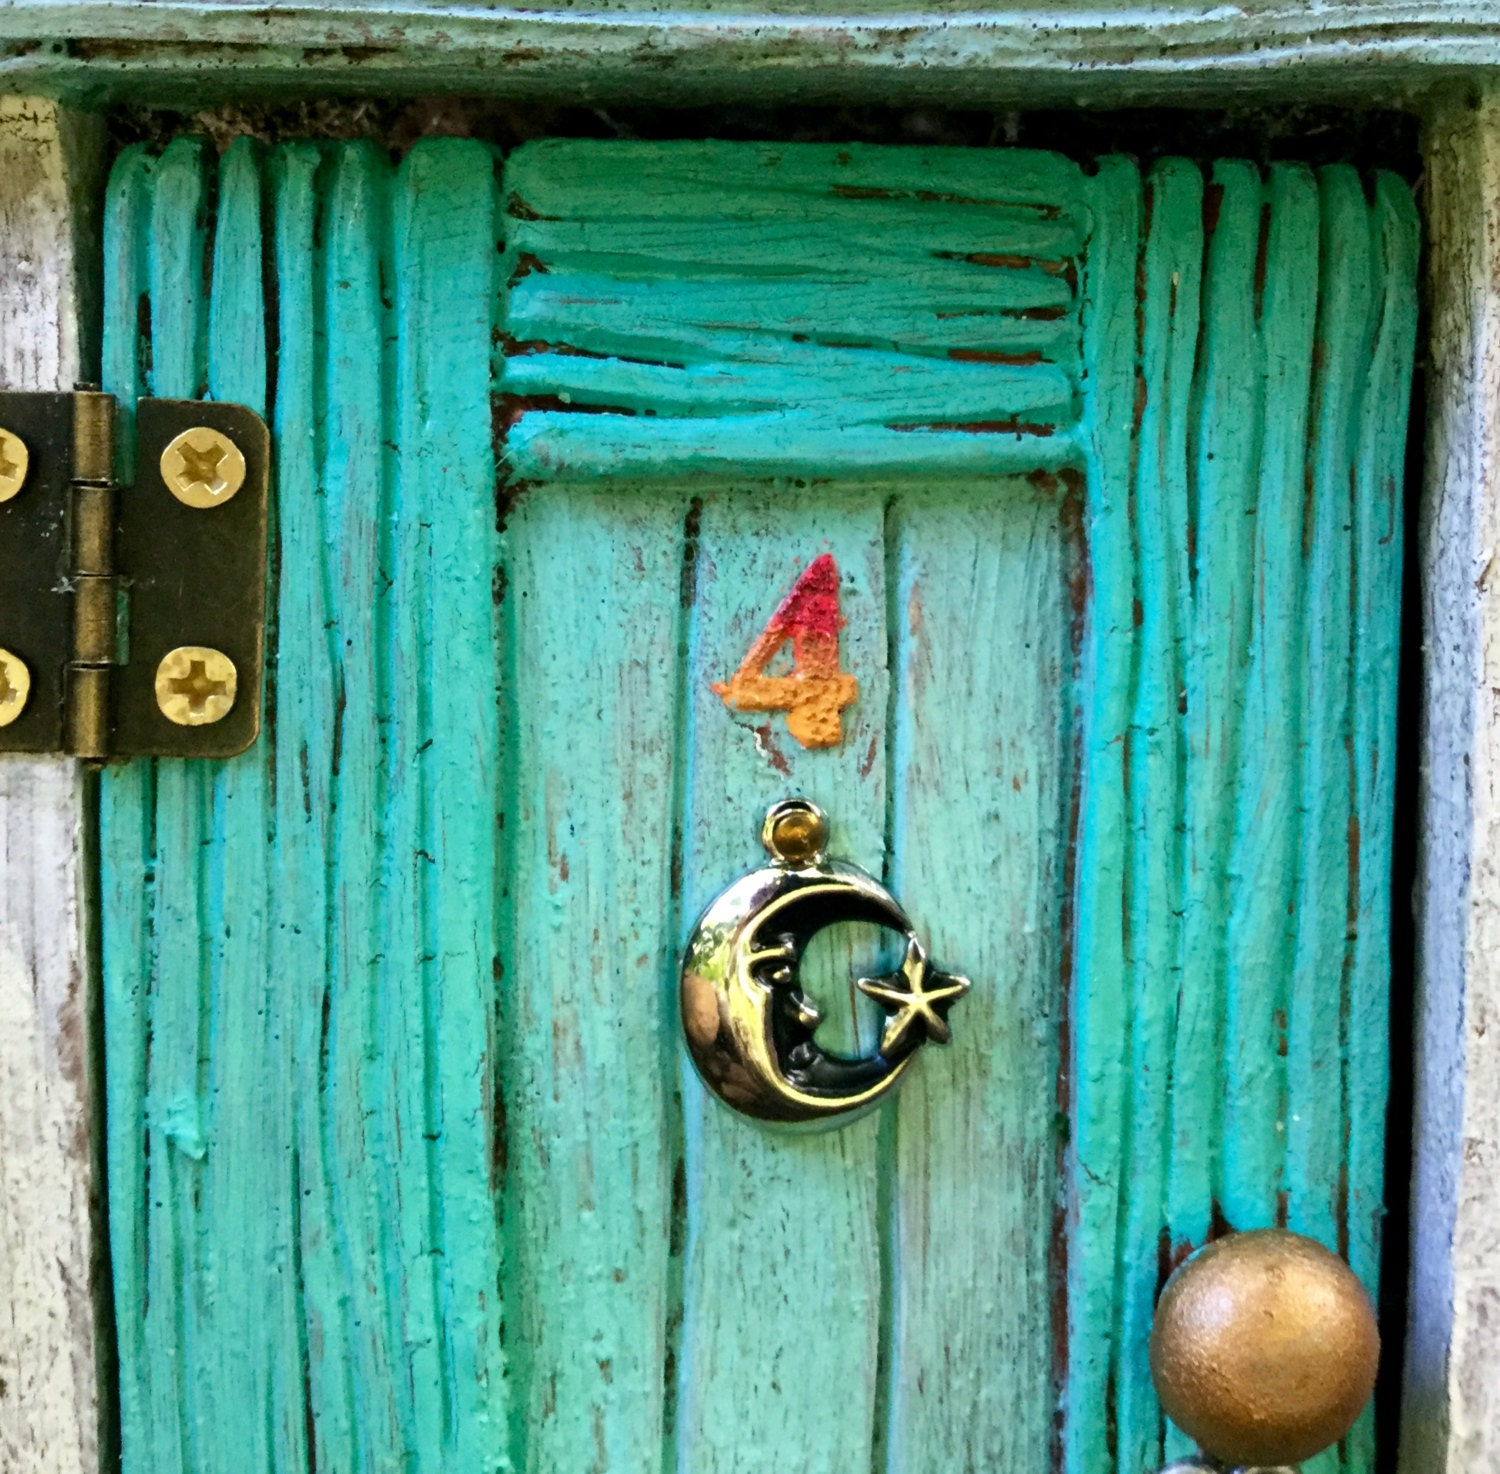 Hinged 5 wood grain style fairy door for the home or for Wooden fairy doors to decorate